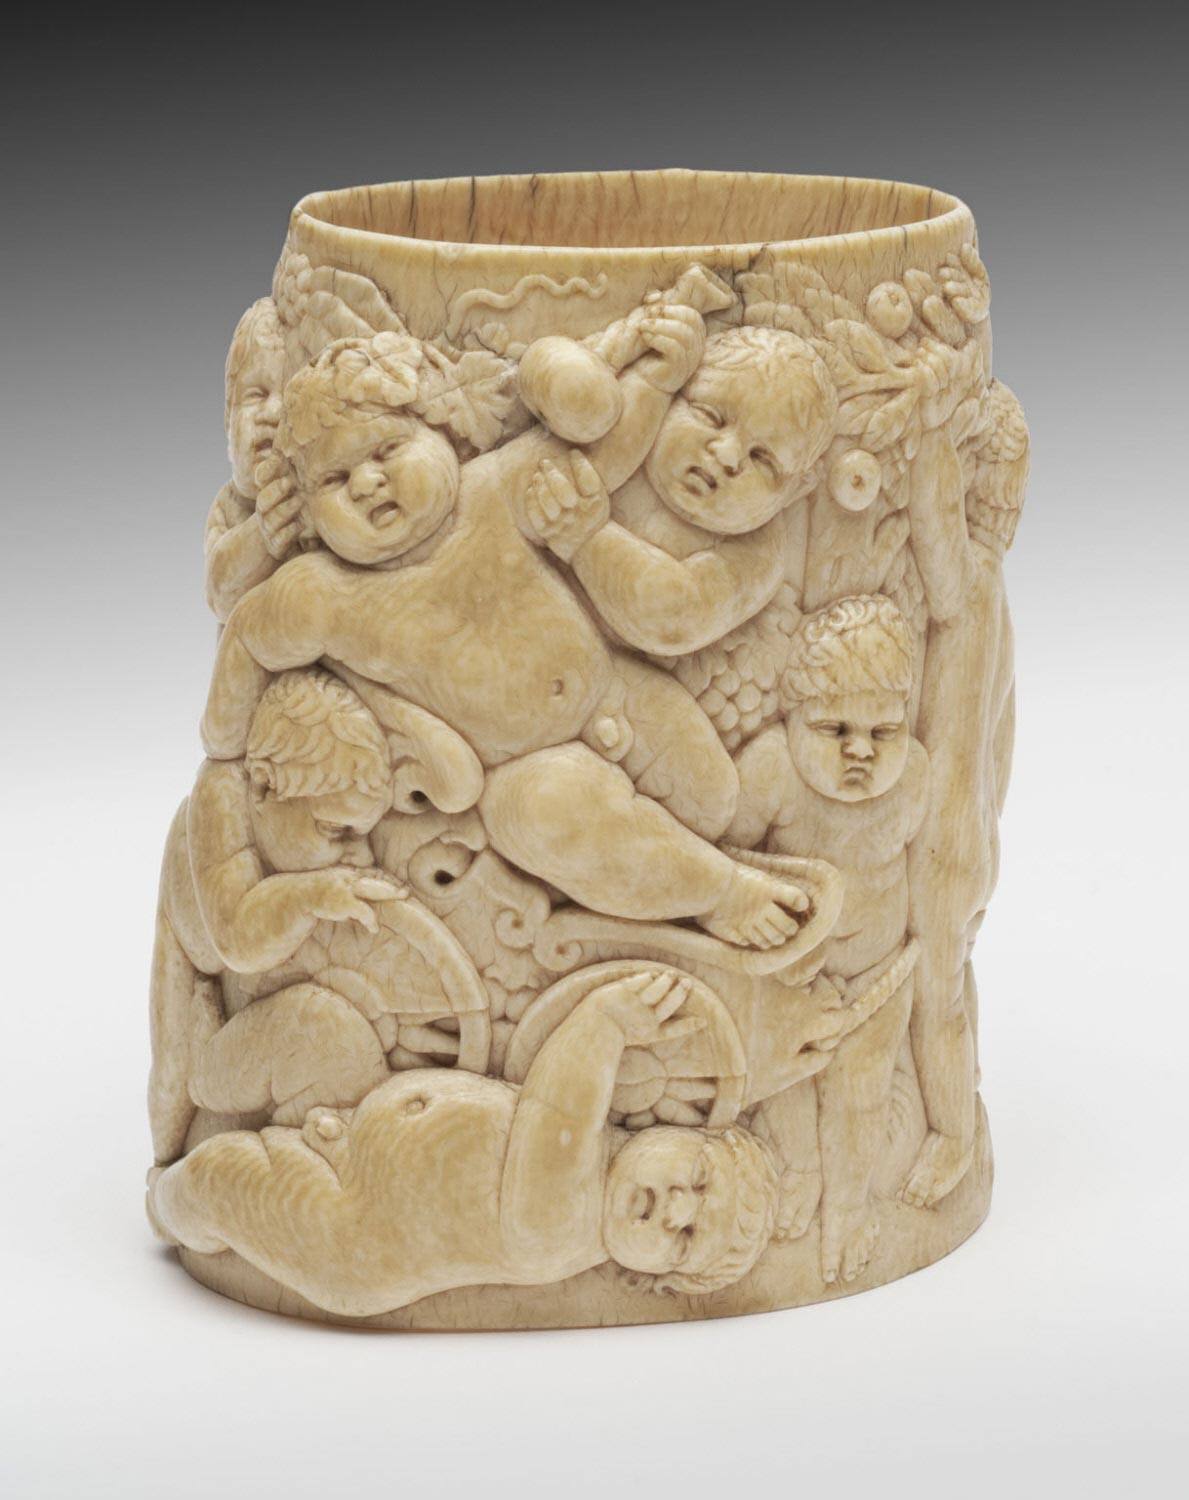 Ivory Sleeve for a Tankard with a Procession of Bacchic Putti